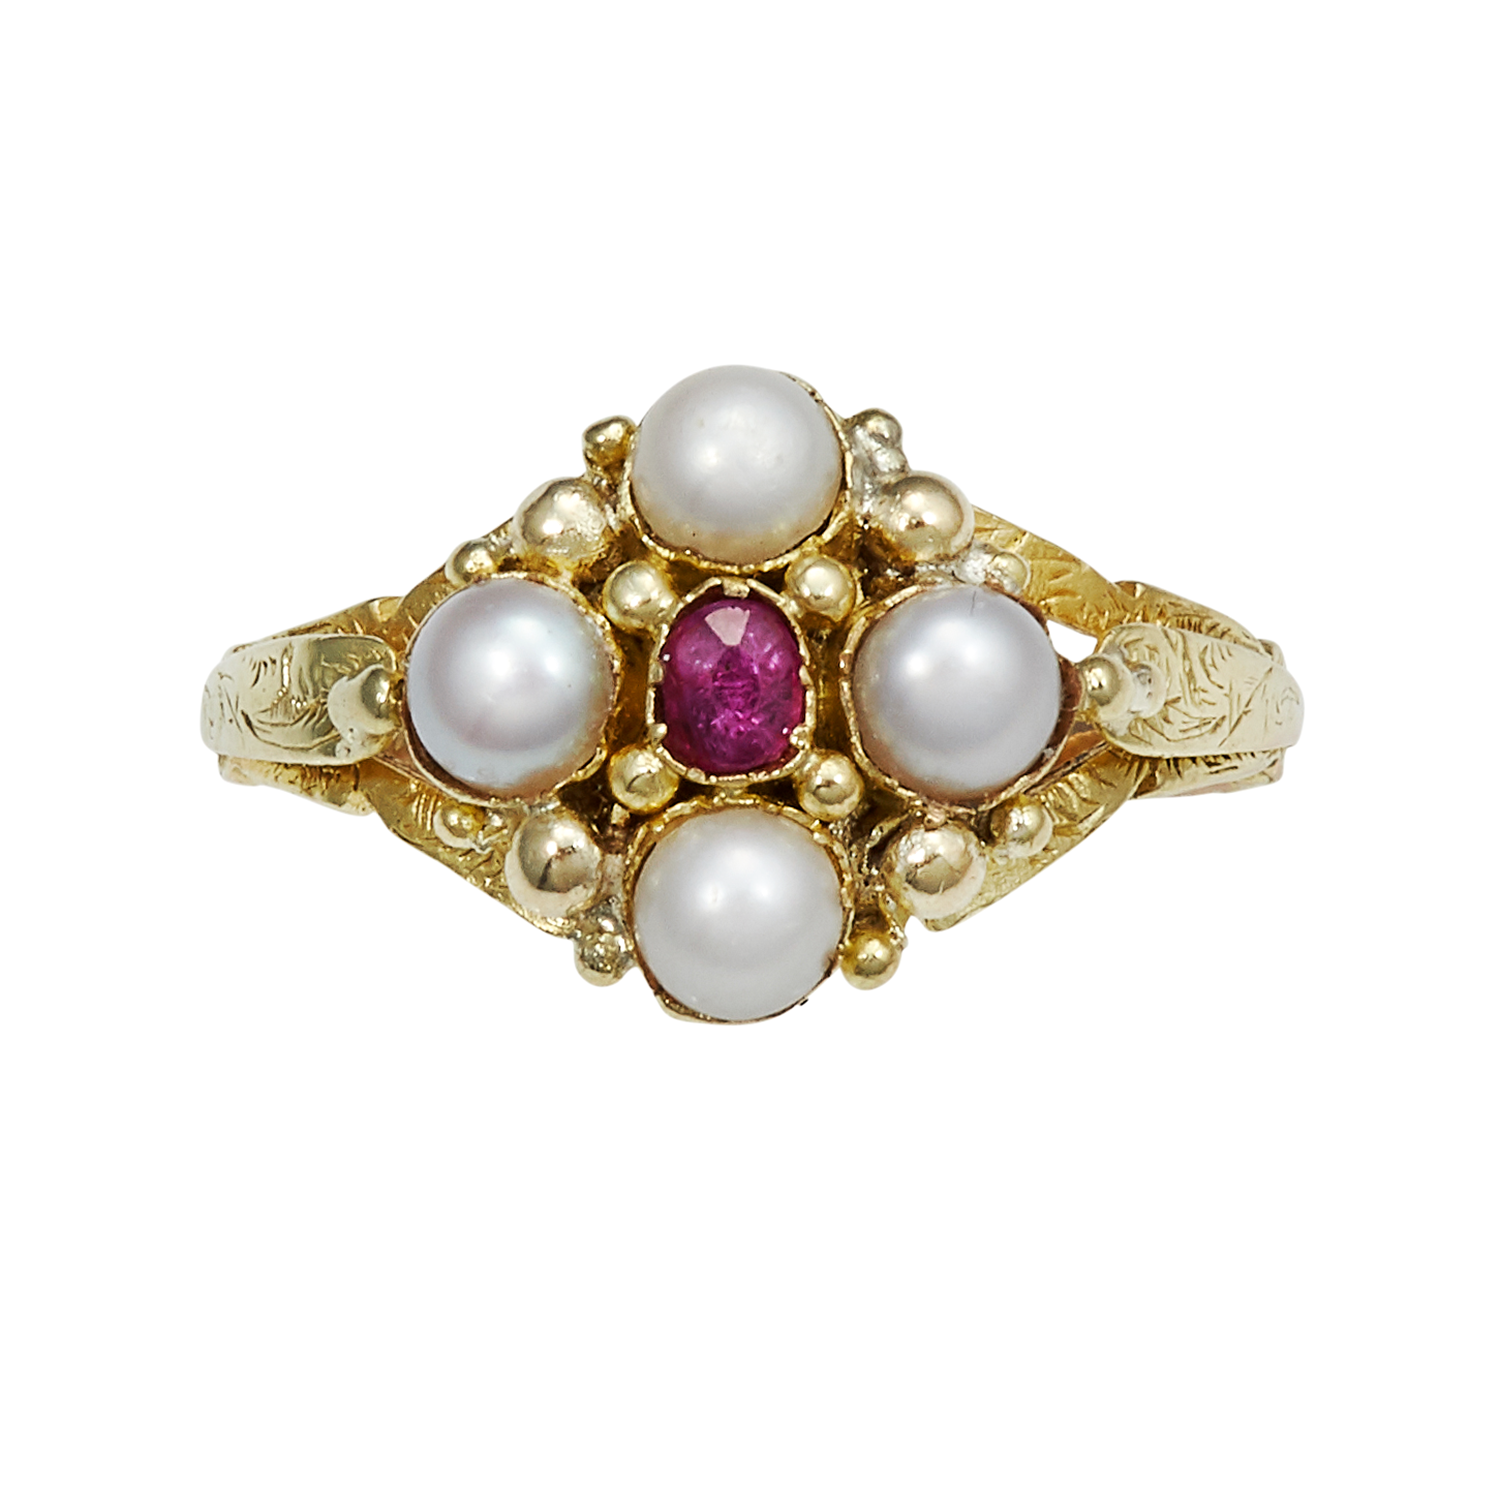 Los 16 - AN ANTIQUE RUBY AND PEARL RING, 19TH CENTURY in high carat yellow gold, set with an oval cut ruby